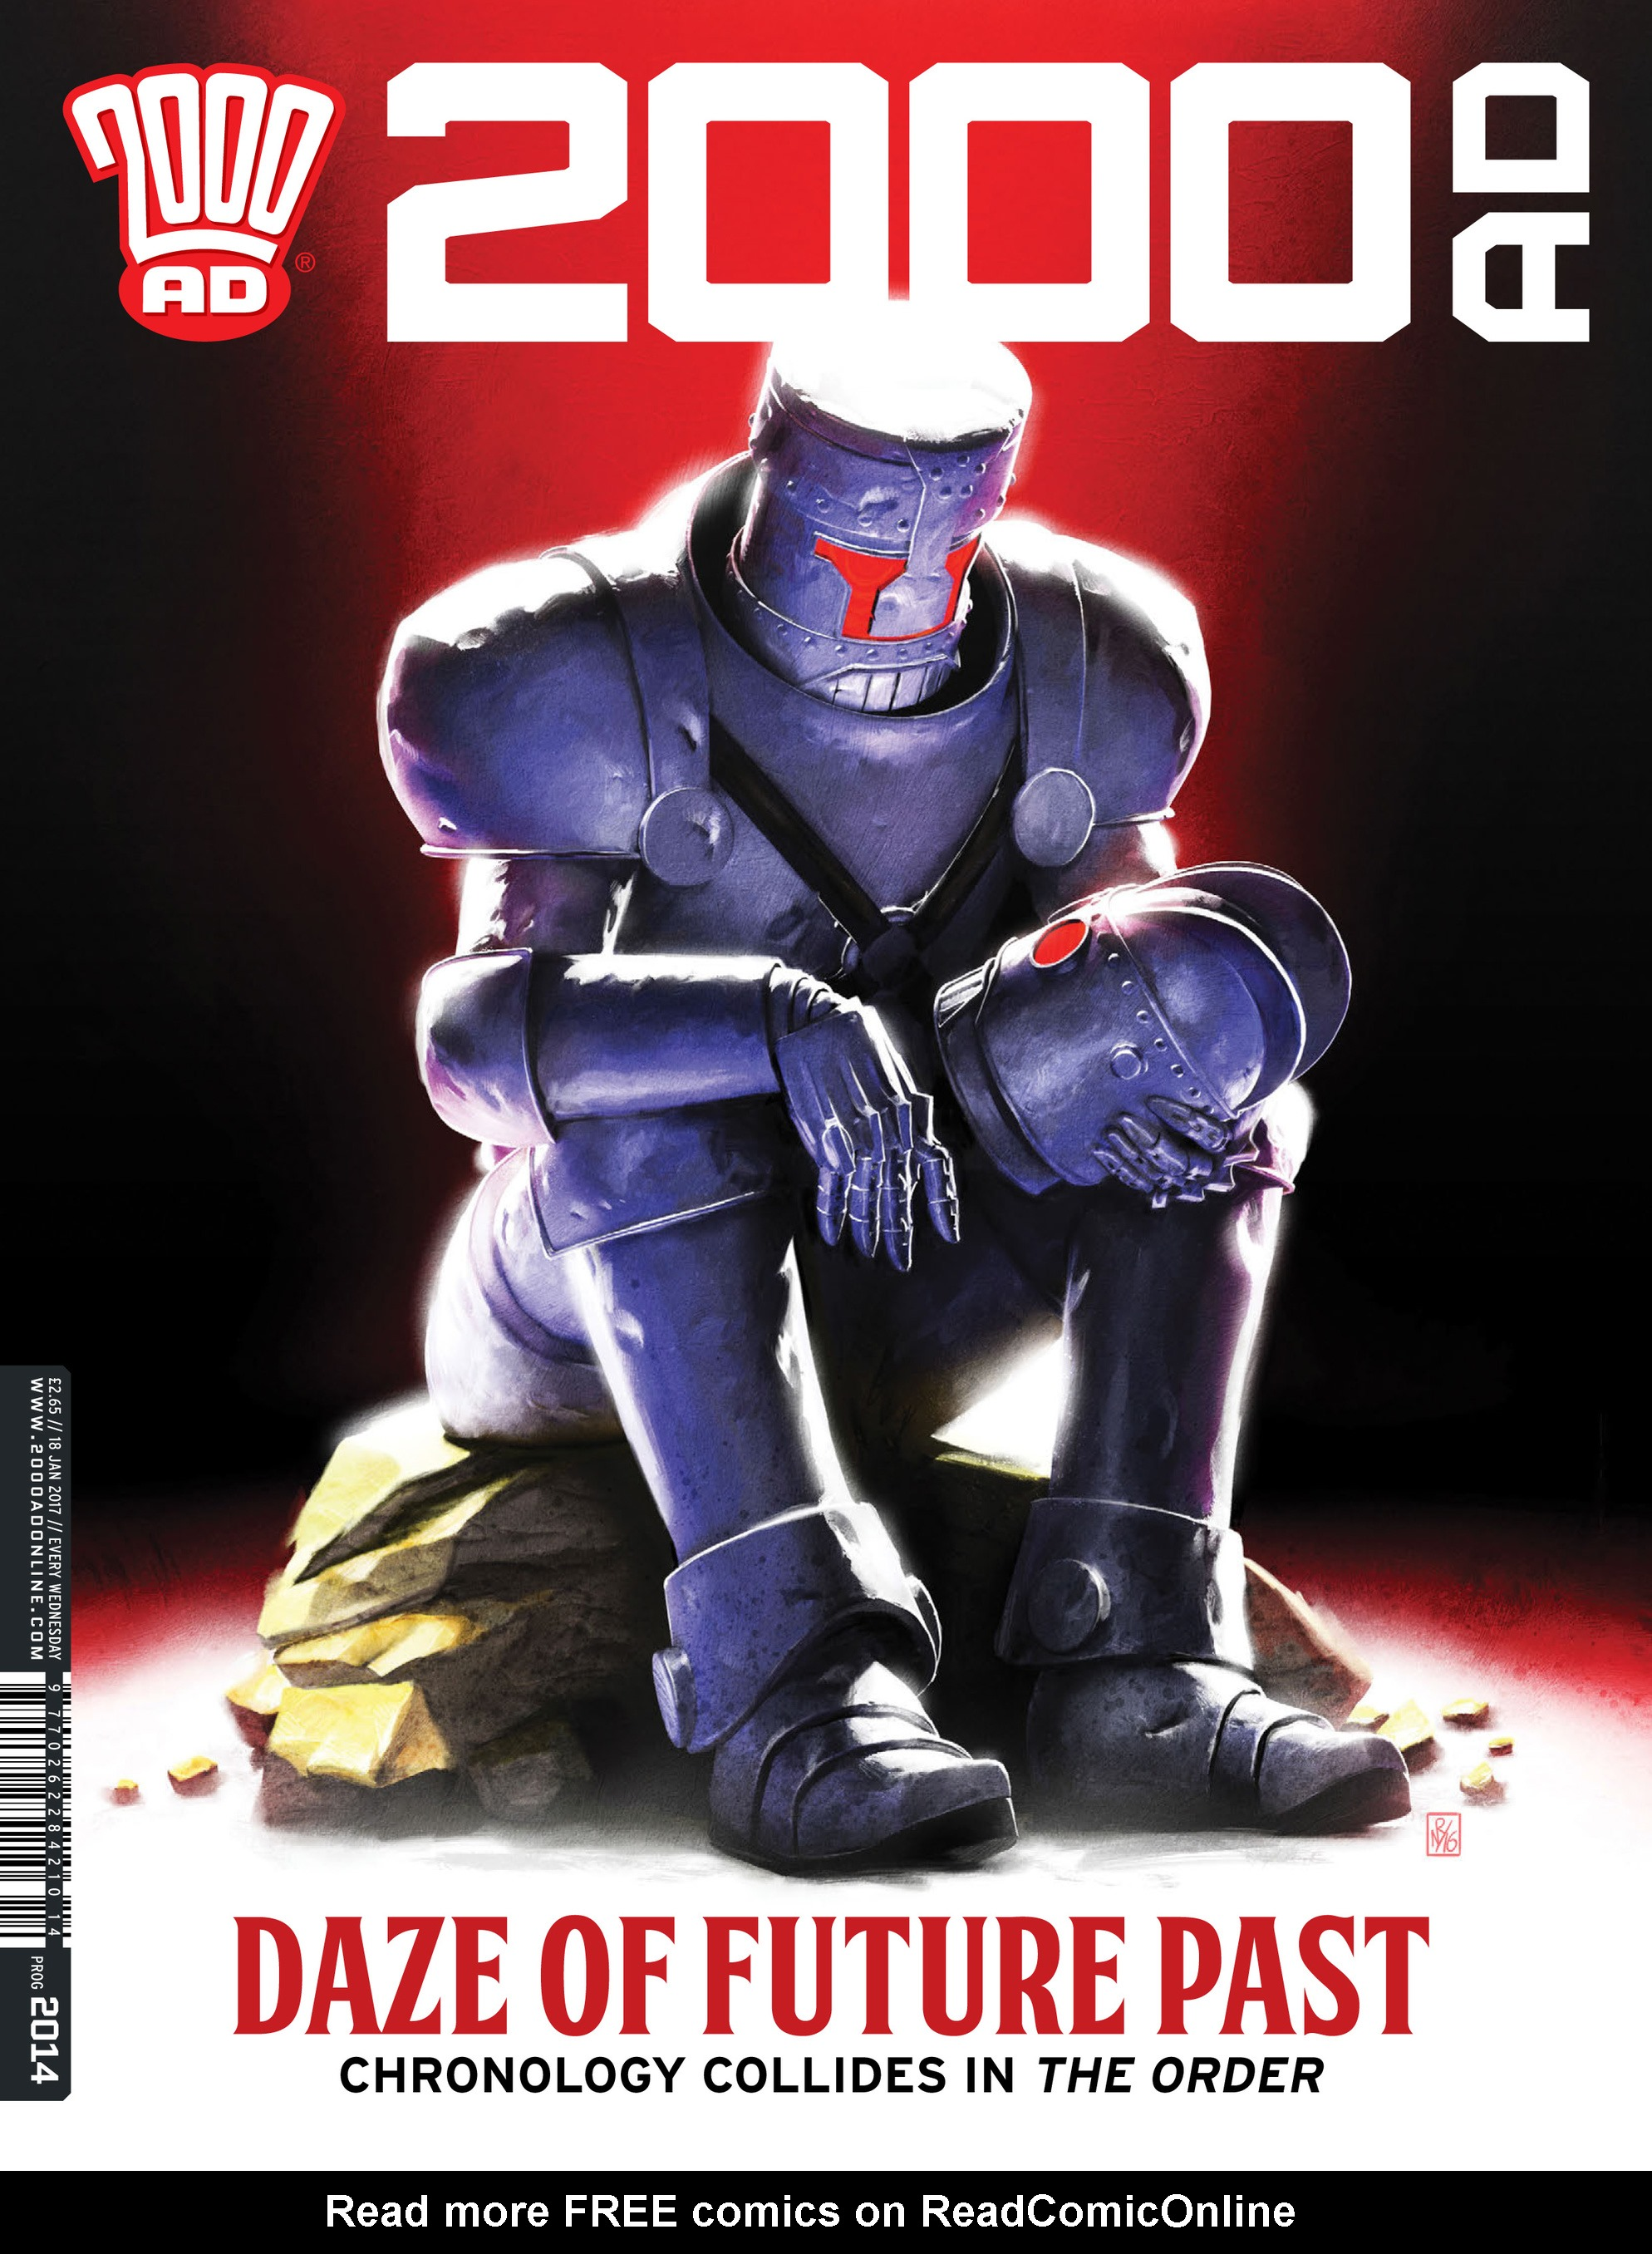 Read online 2000 AD comic -  Issue #2014 - 1